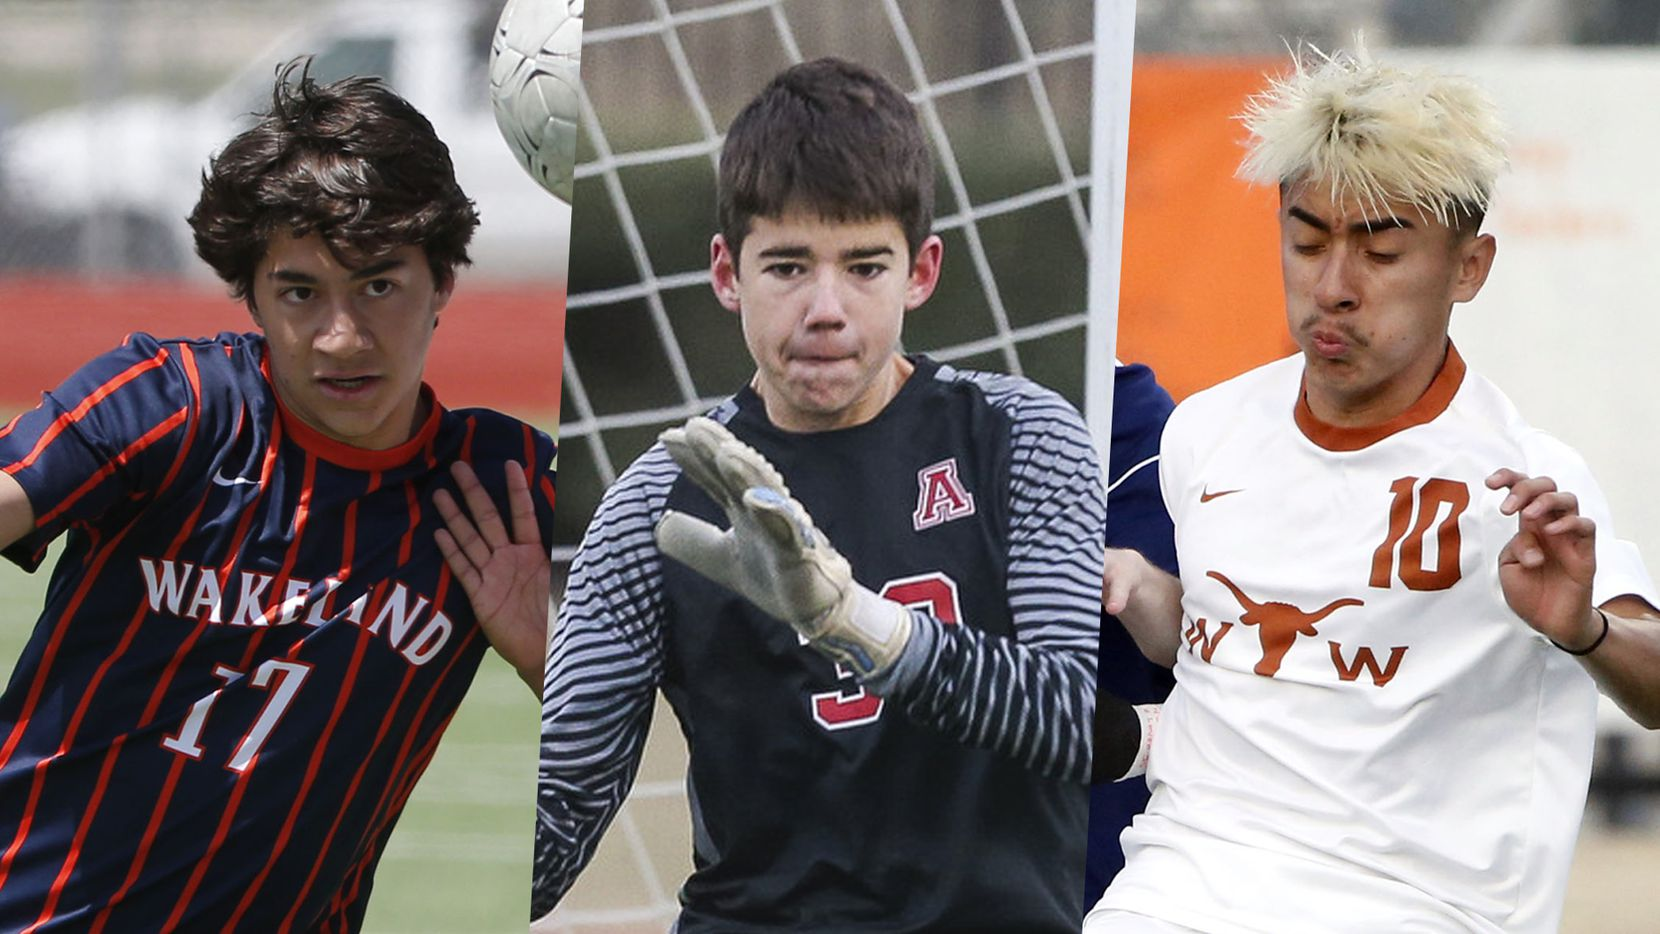 From left to right: Frisco Wakeland's Marc Borbonus, Allen's Jackson Leavitt and W.T. White's Byron Aguilar.